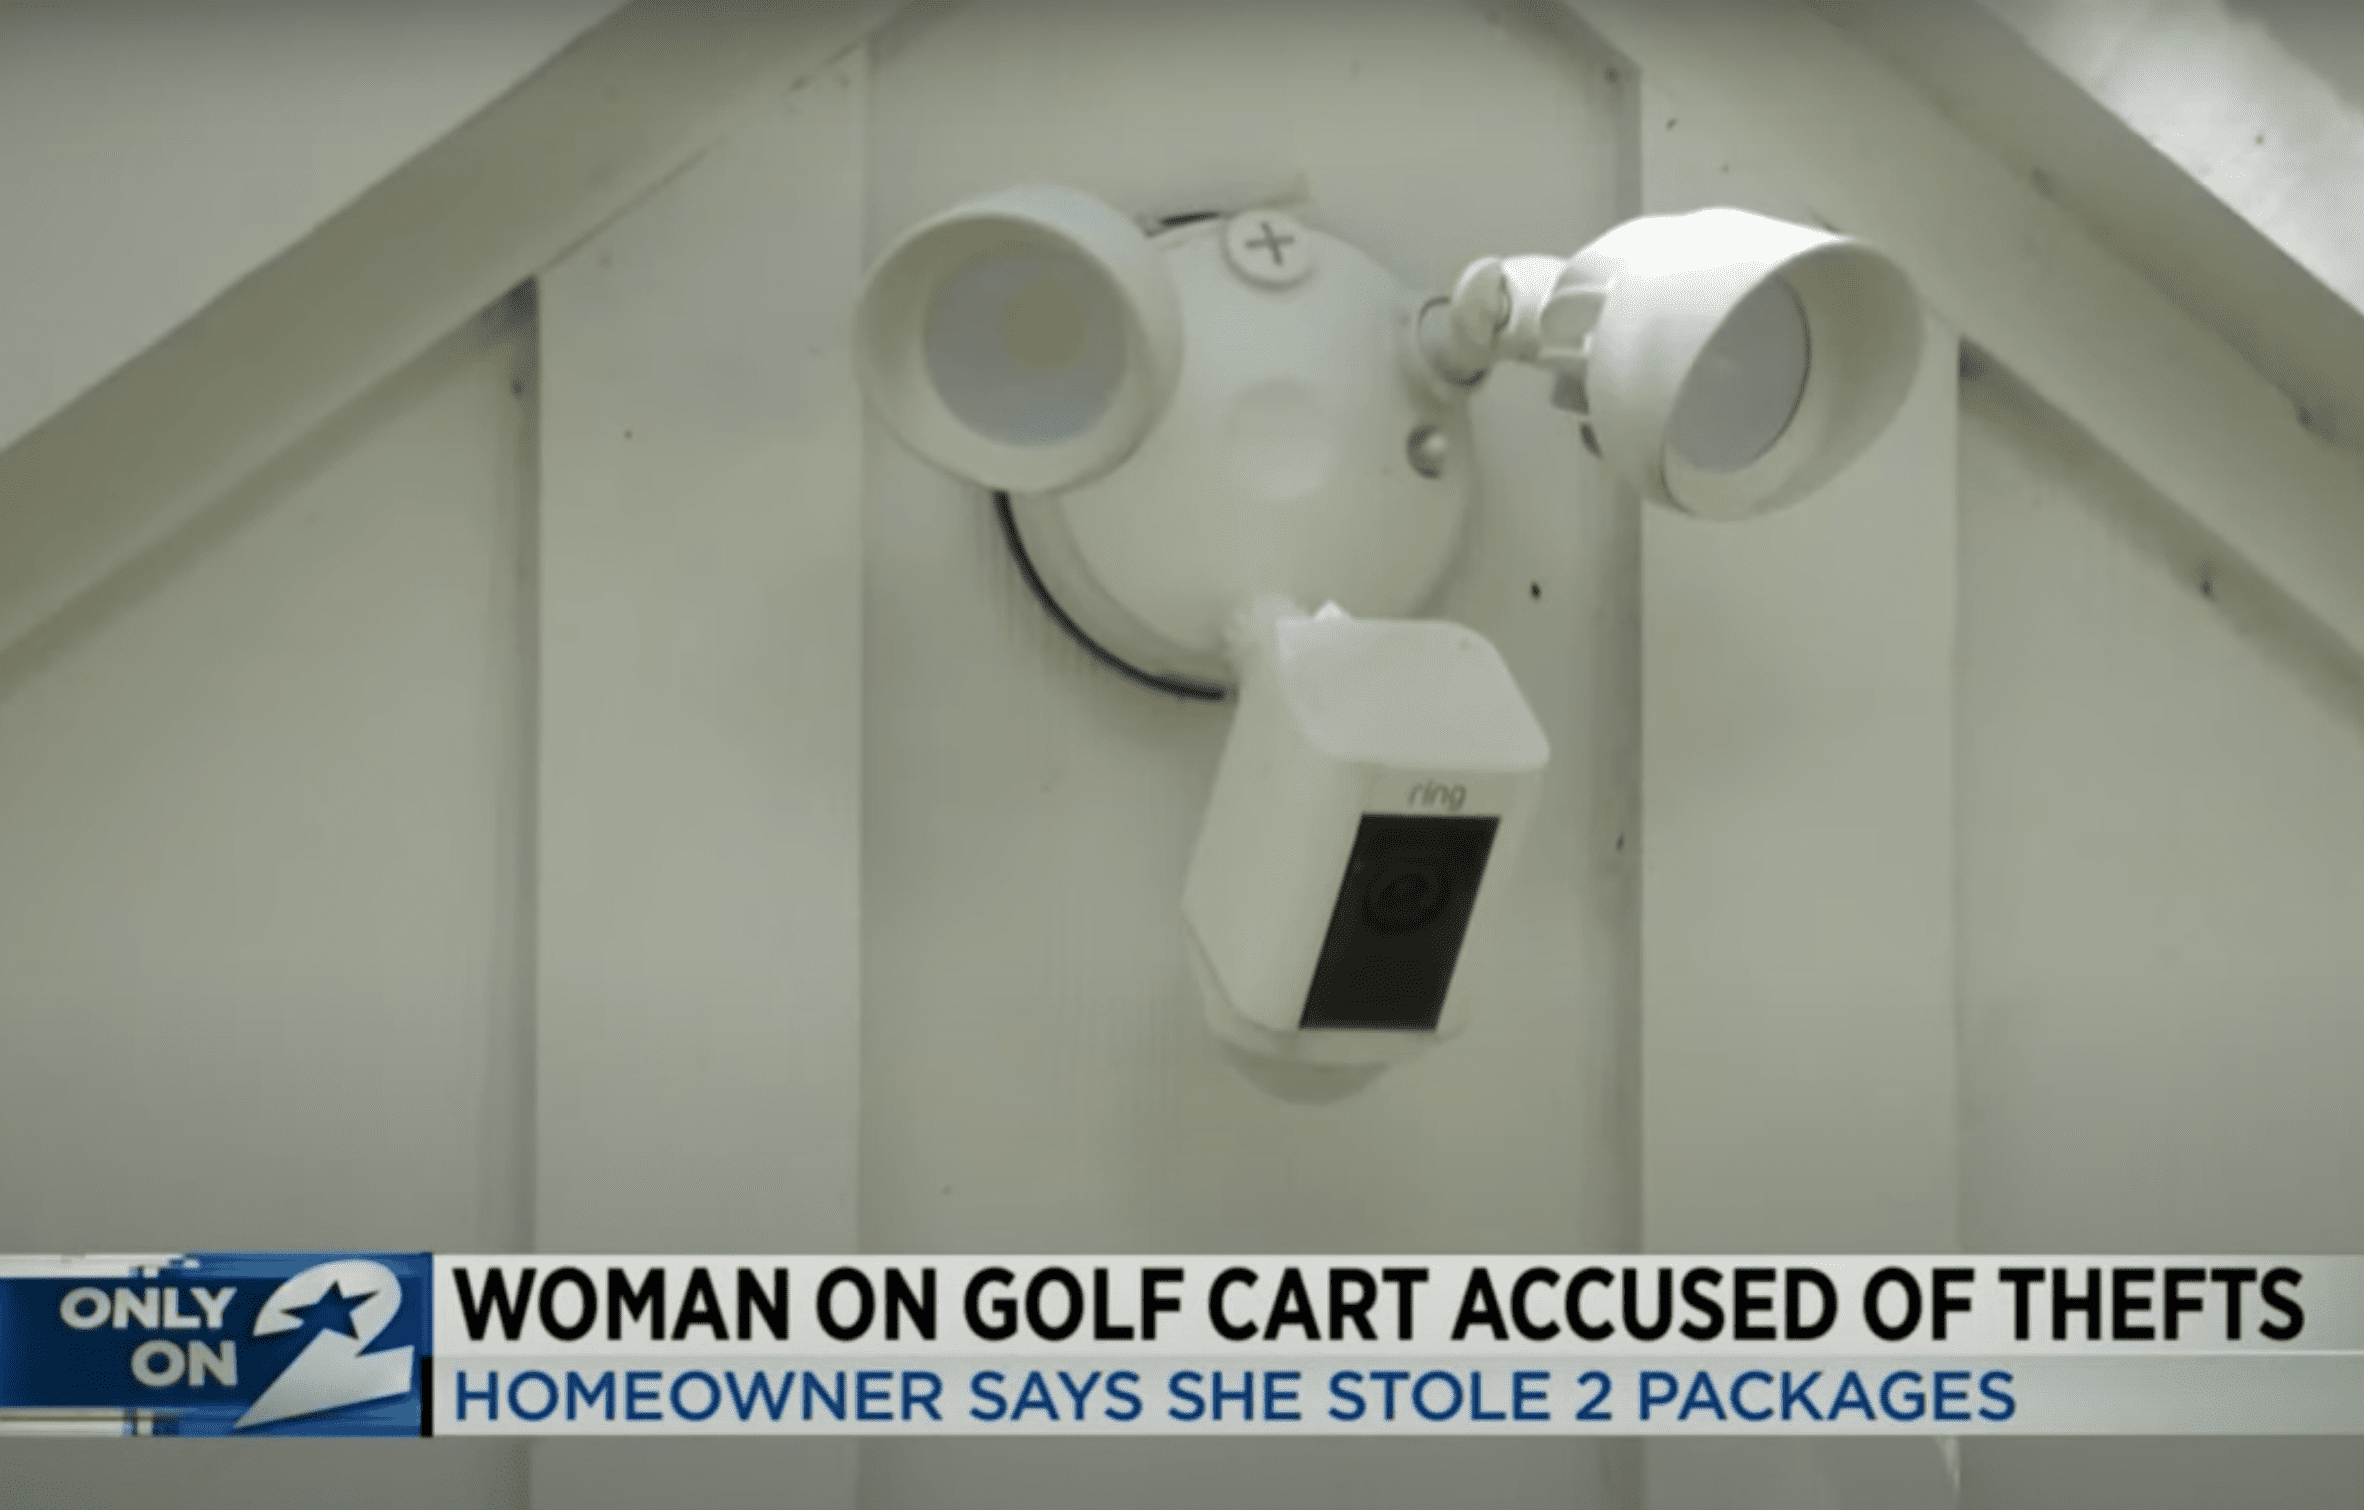 The home security cameras that recorded a woman as she stole two parcels from a front porch | Photo: Youtube/KPRC 2 Click2Houston